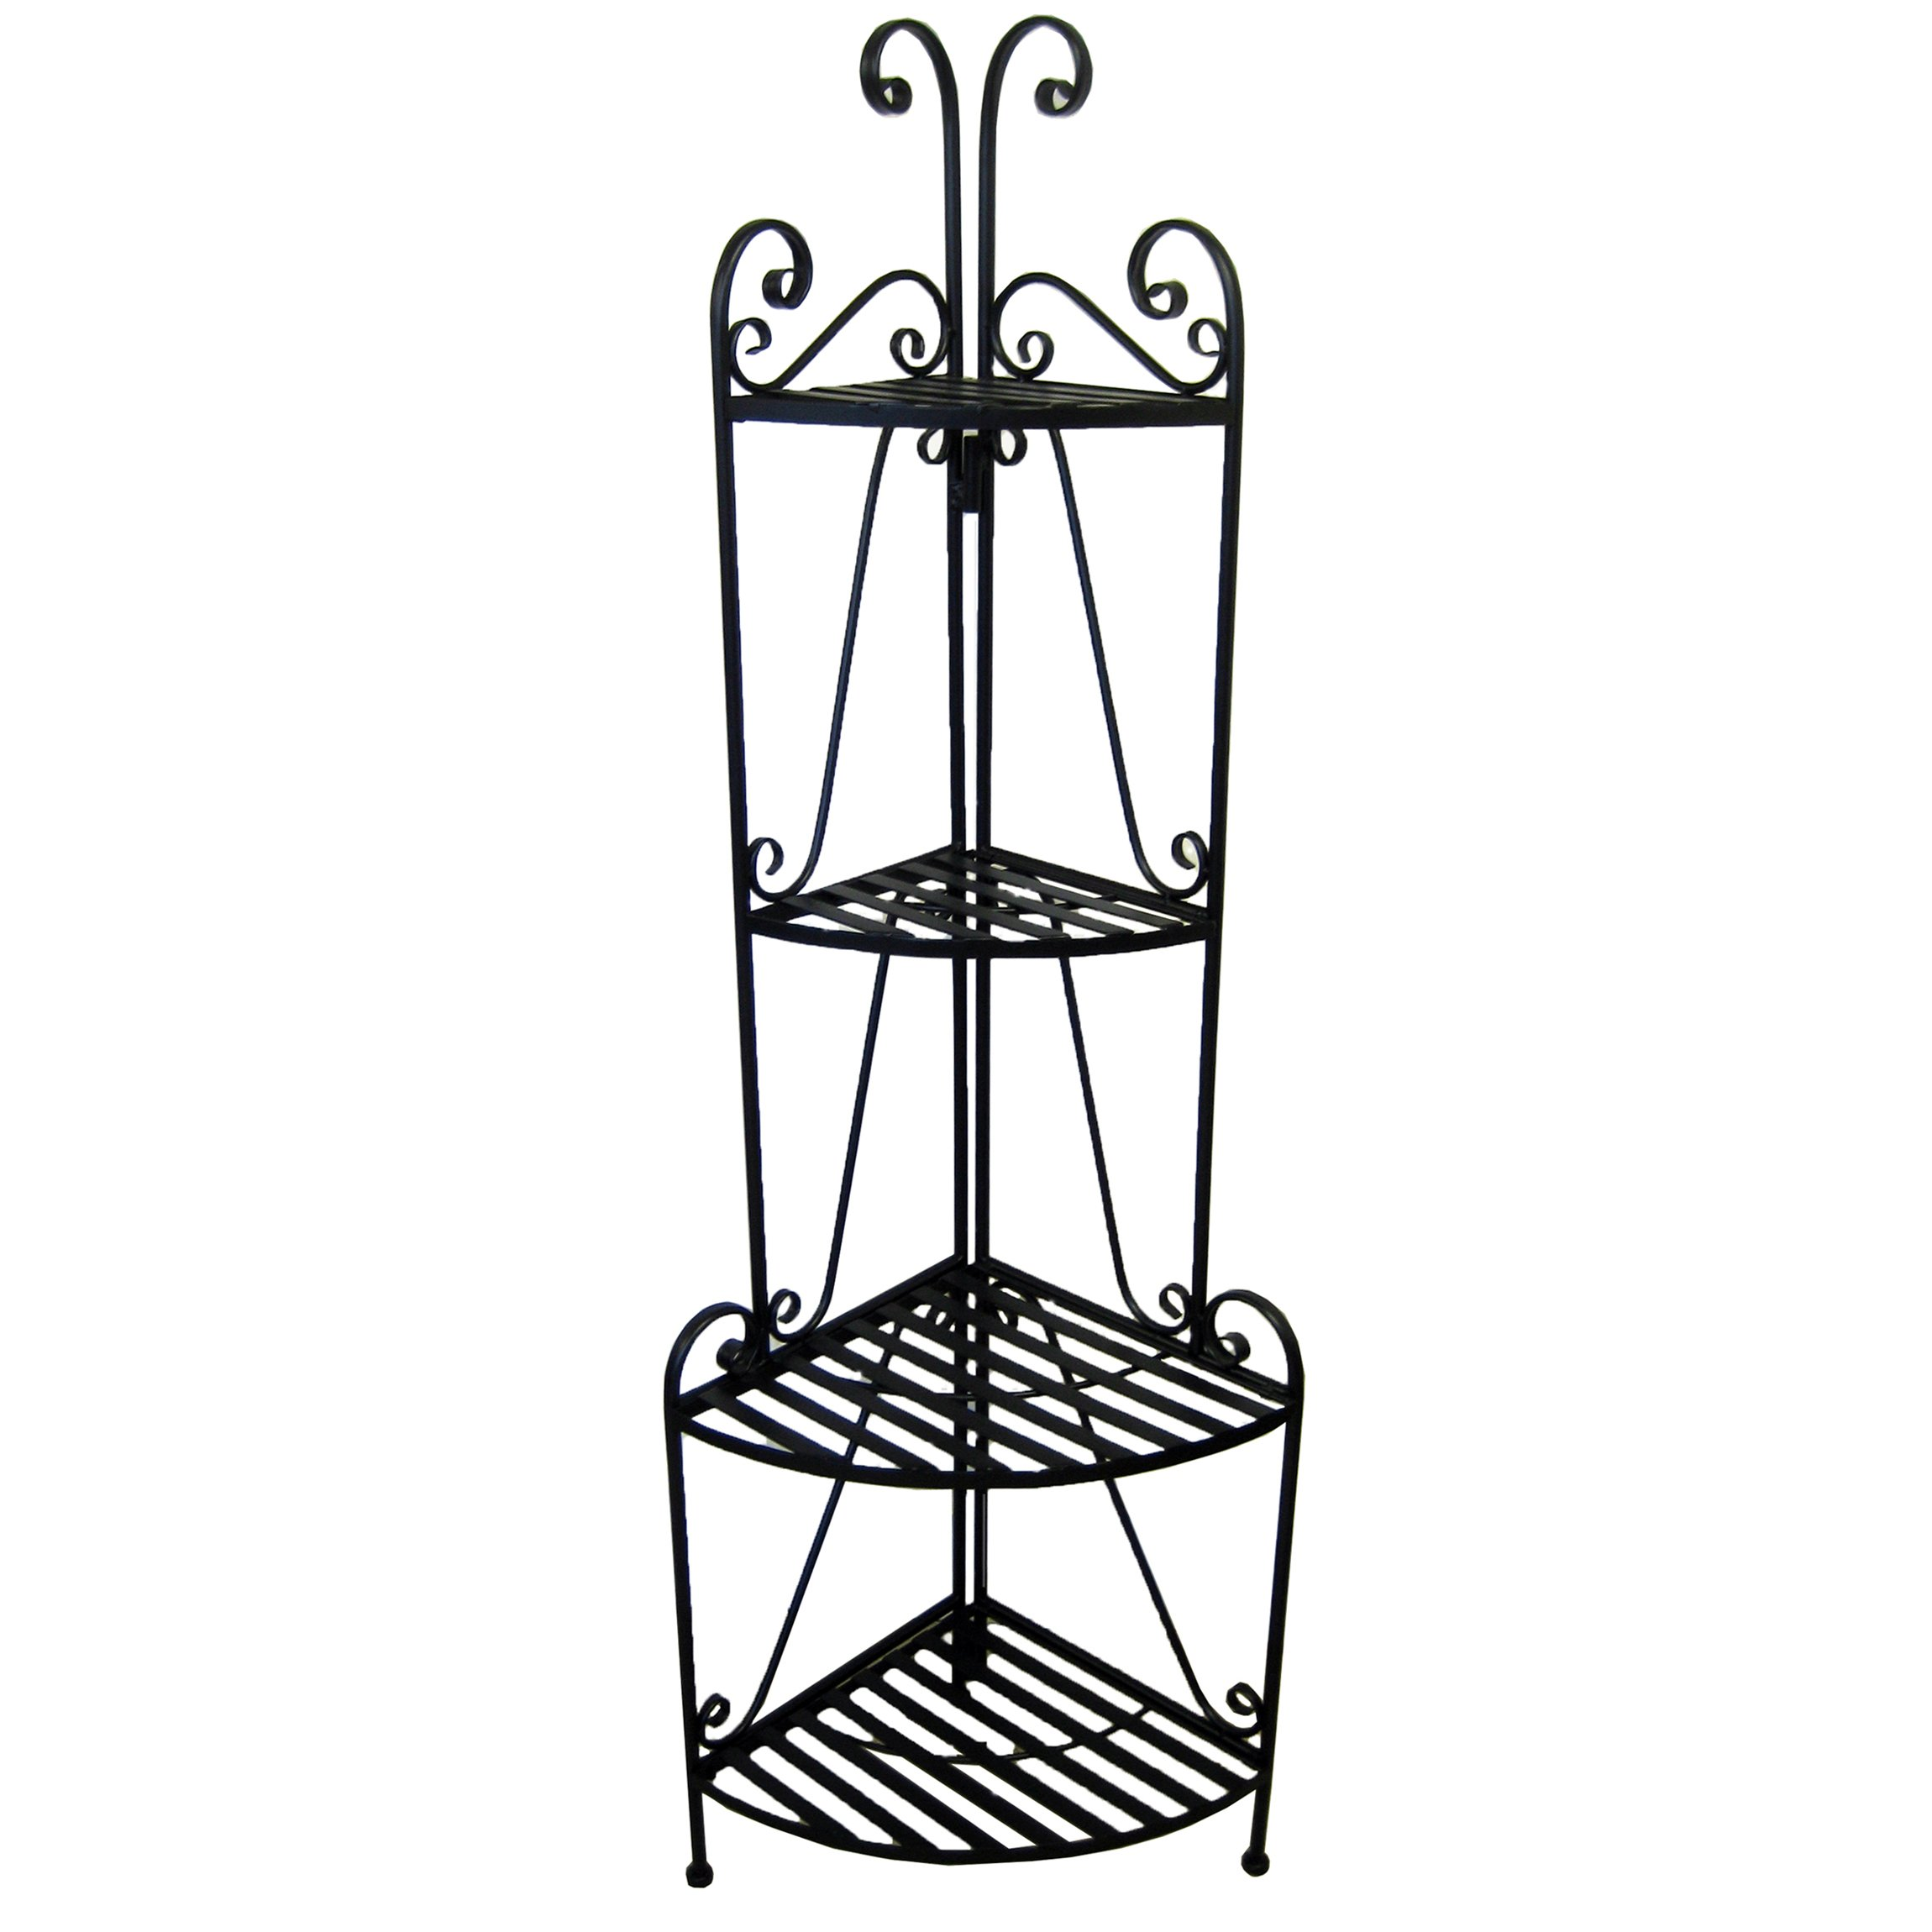 Pangaea Home and Garden Folding Corner Bakers Rack Four Shelves - Black by Pangaea Home and Garden